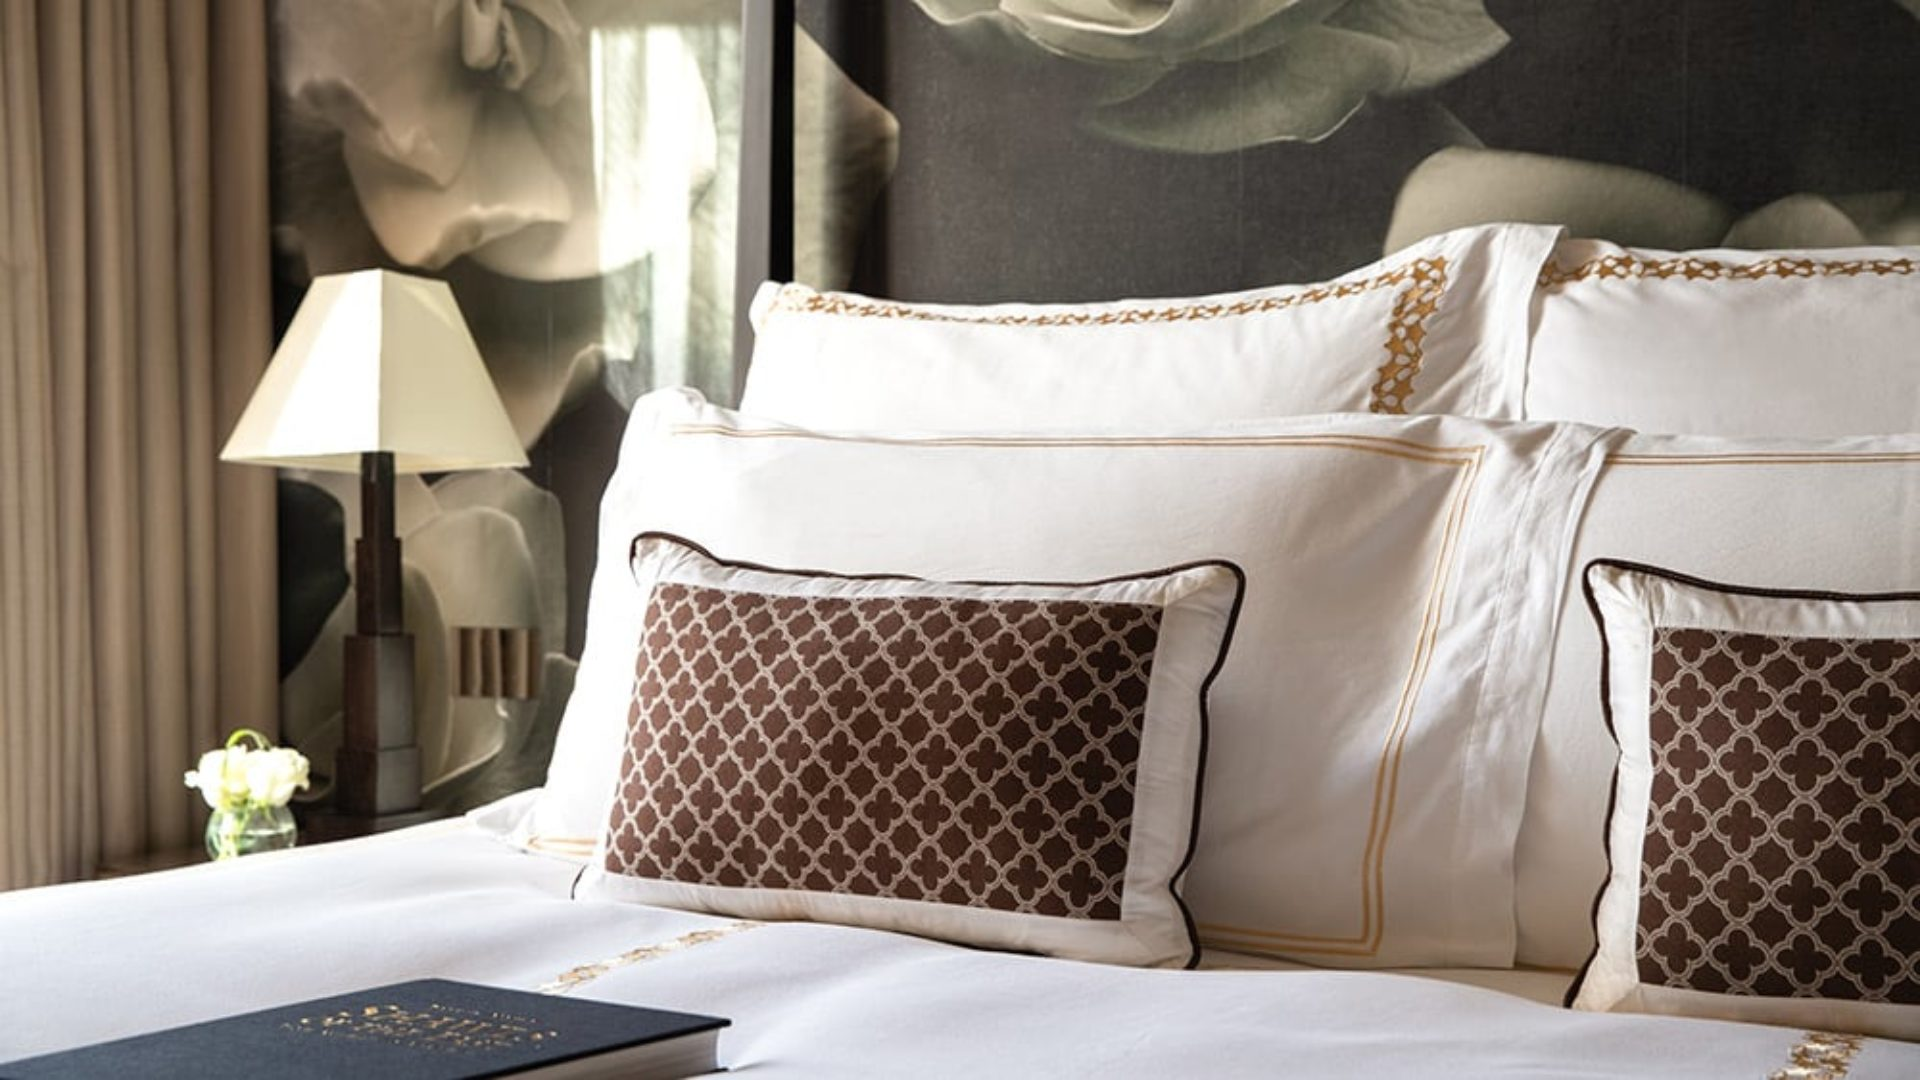 Luxury bedroom at Jumeirah Emirates Towers